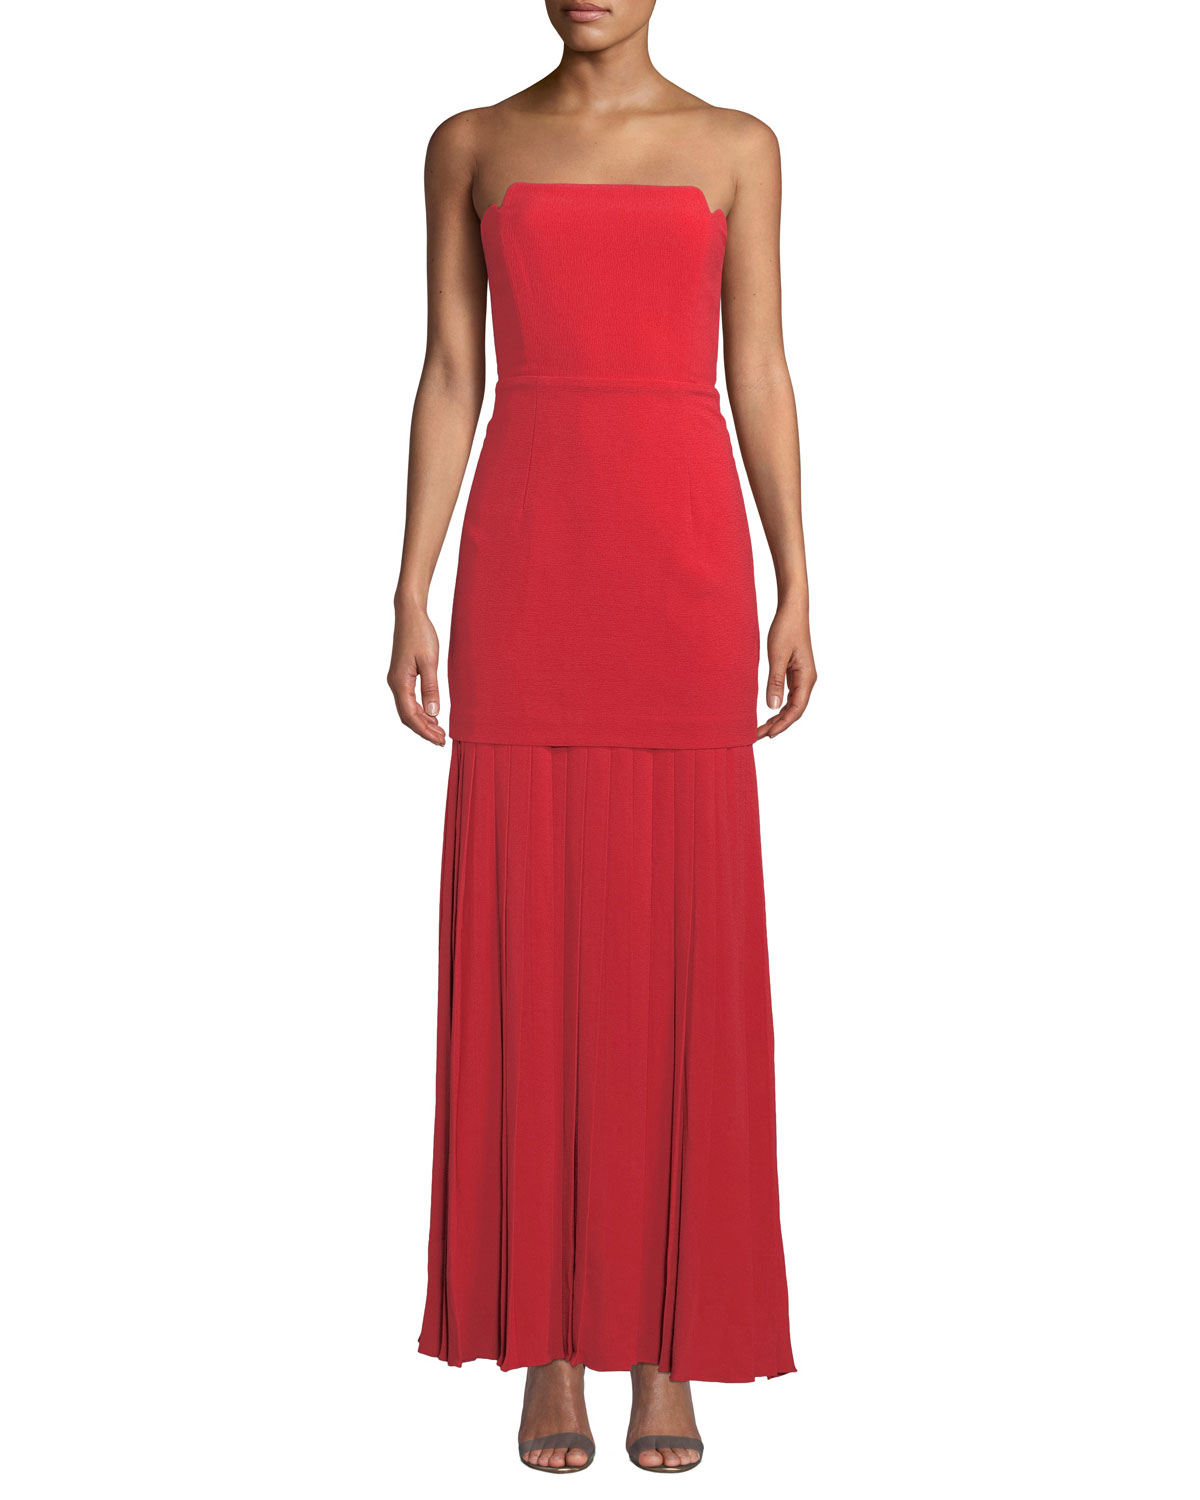 Aijek Vida Strapless Pleated Bustier Maxi Dress | Neiman ...